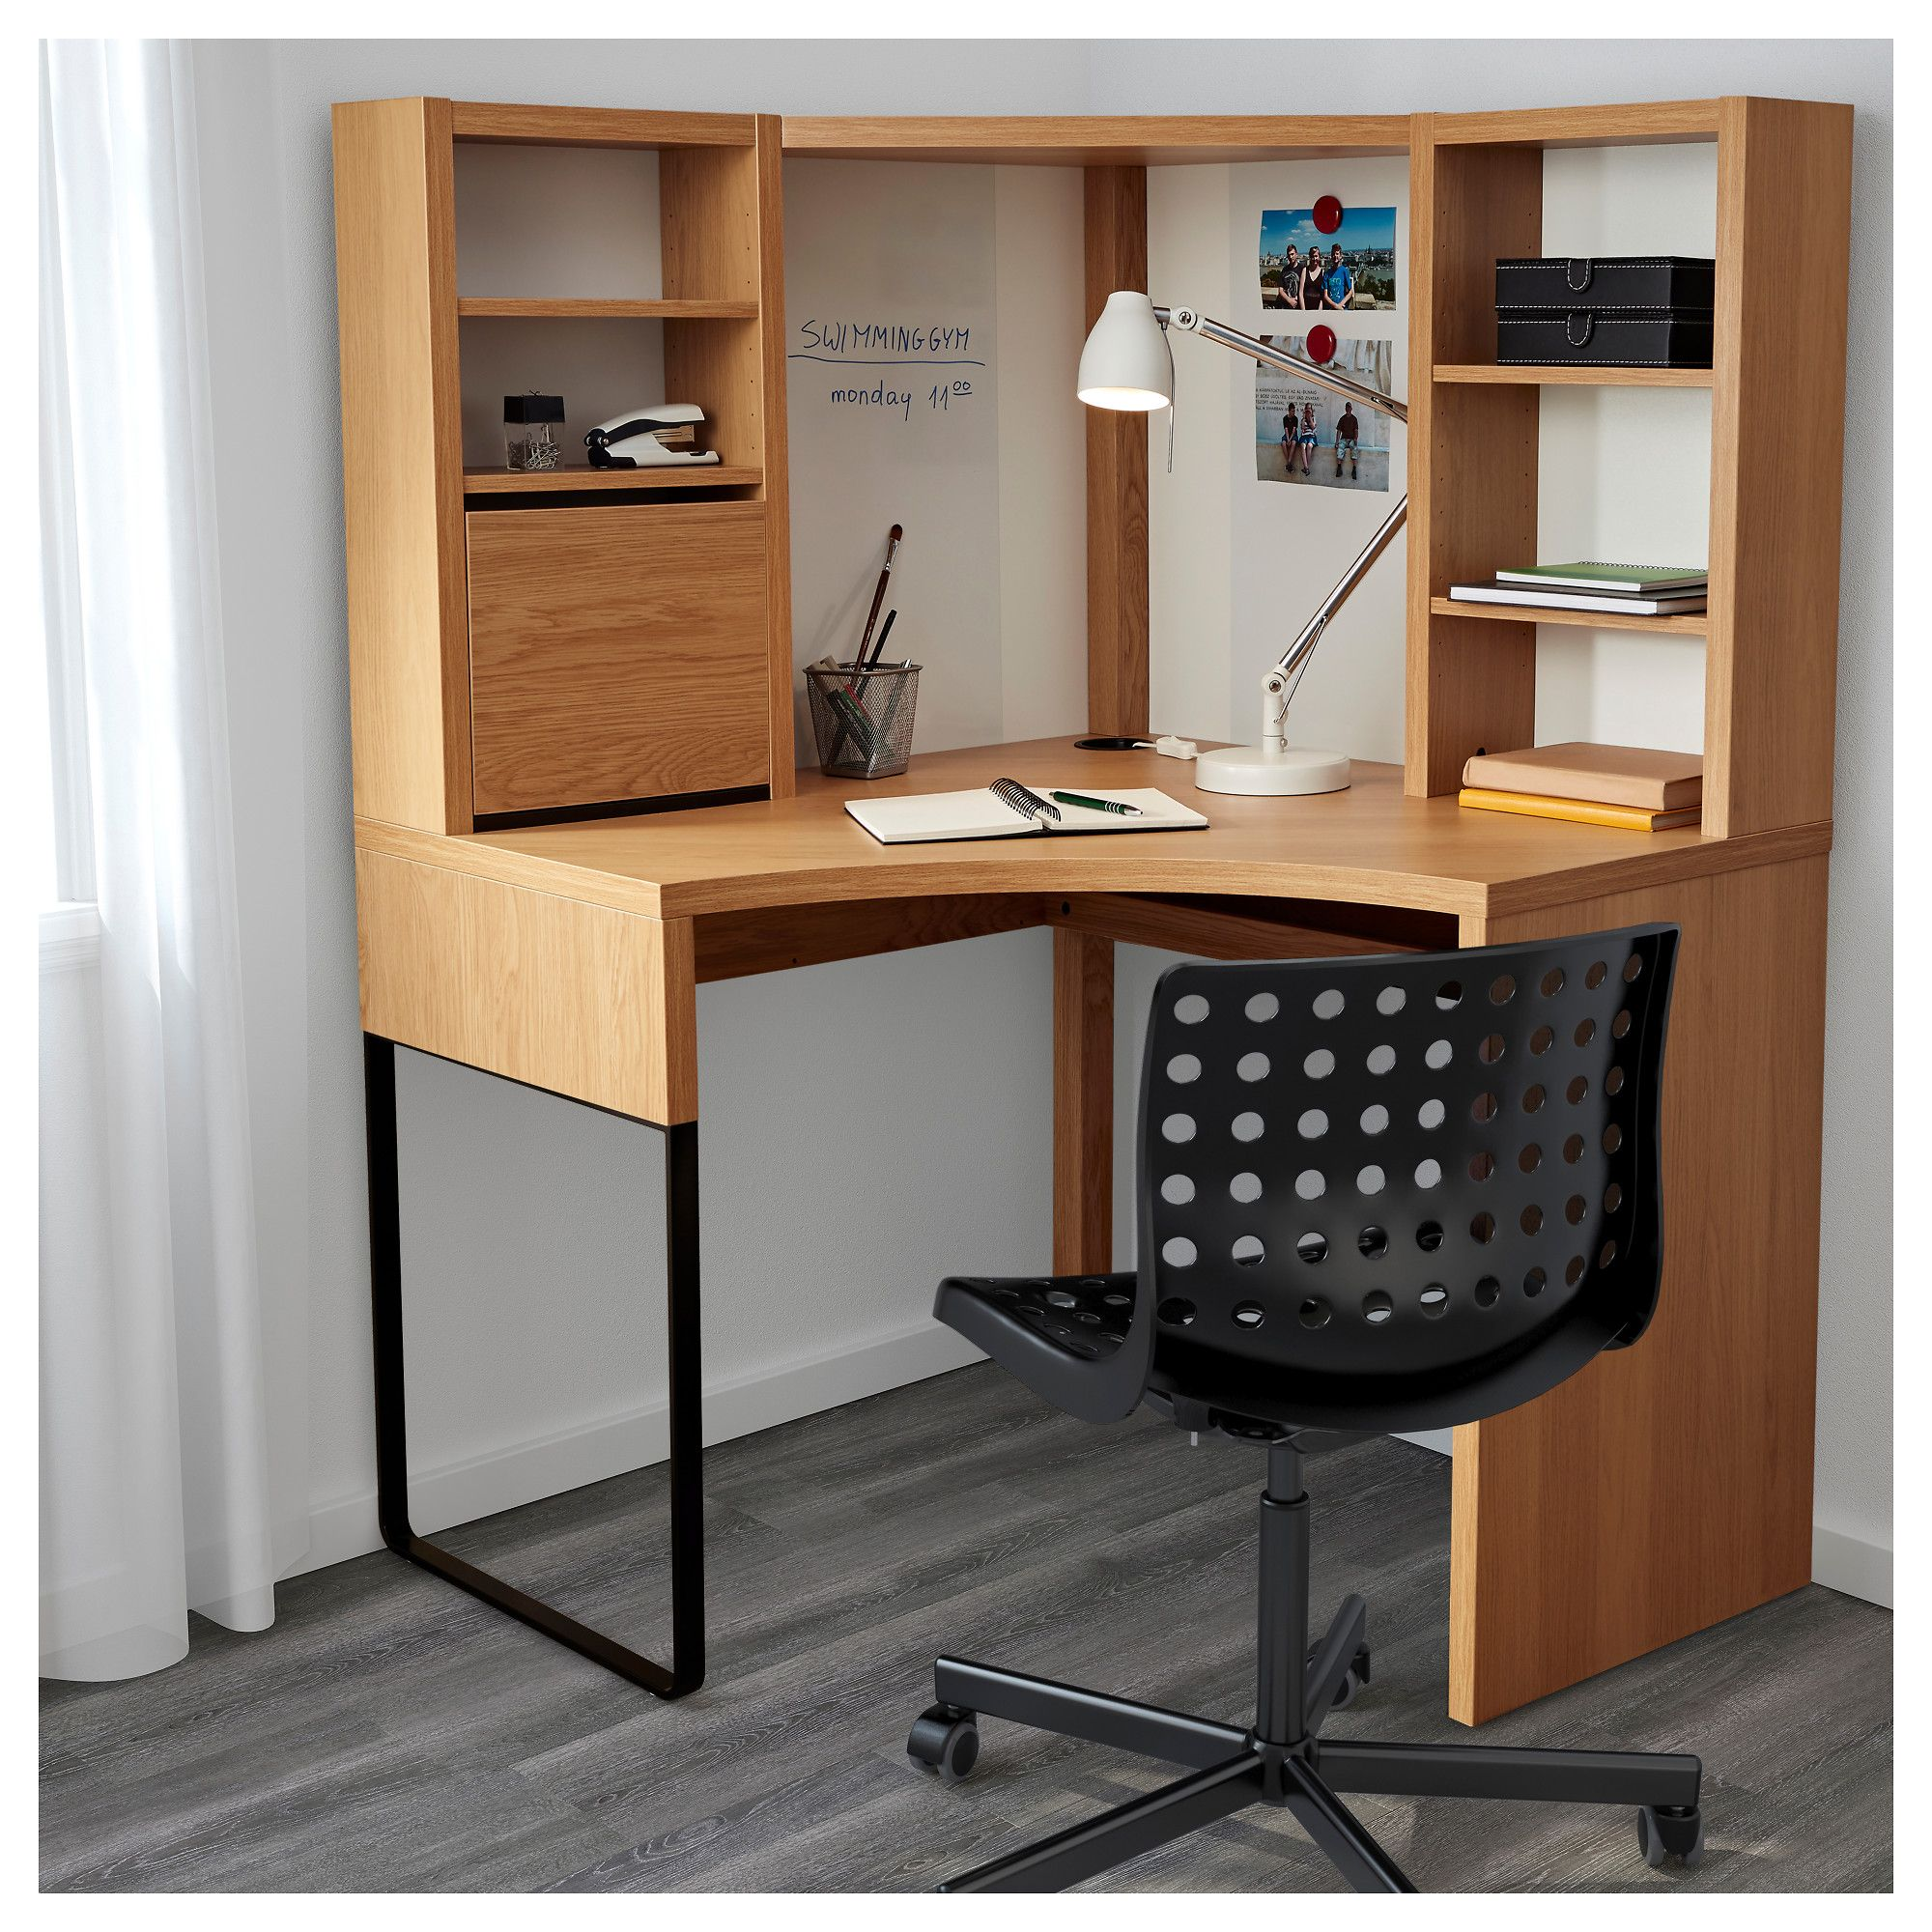 new arrivals 82bee b09d6 MICKE Corner workstation Oak effect IKEA in 2019 | Corner ...